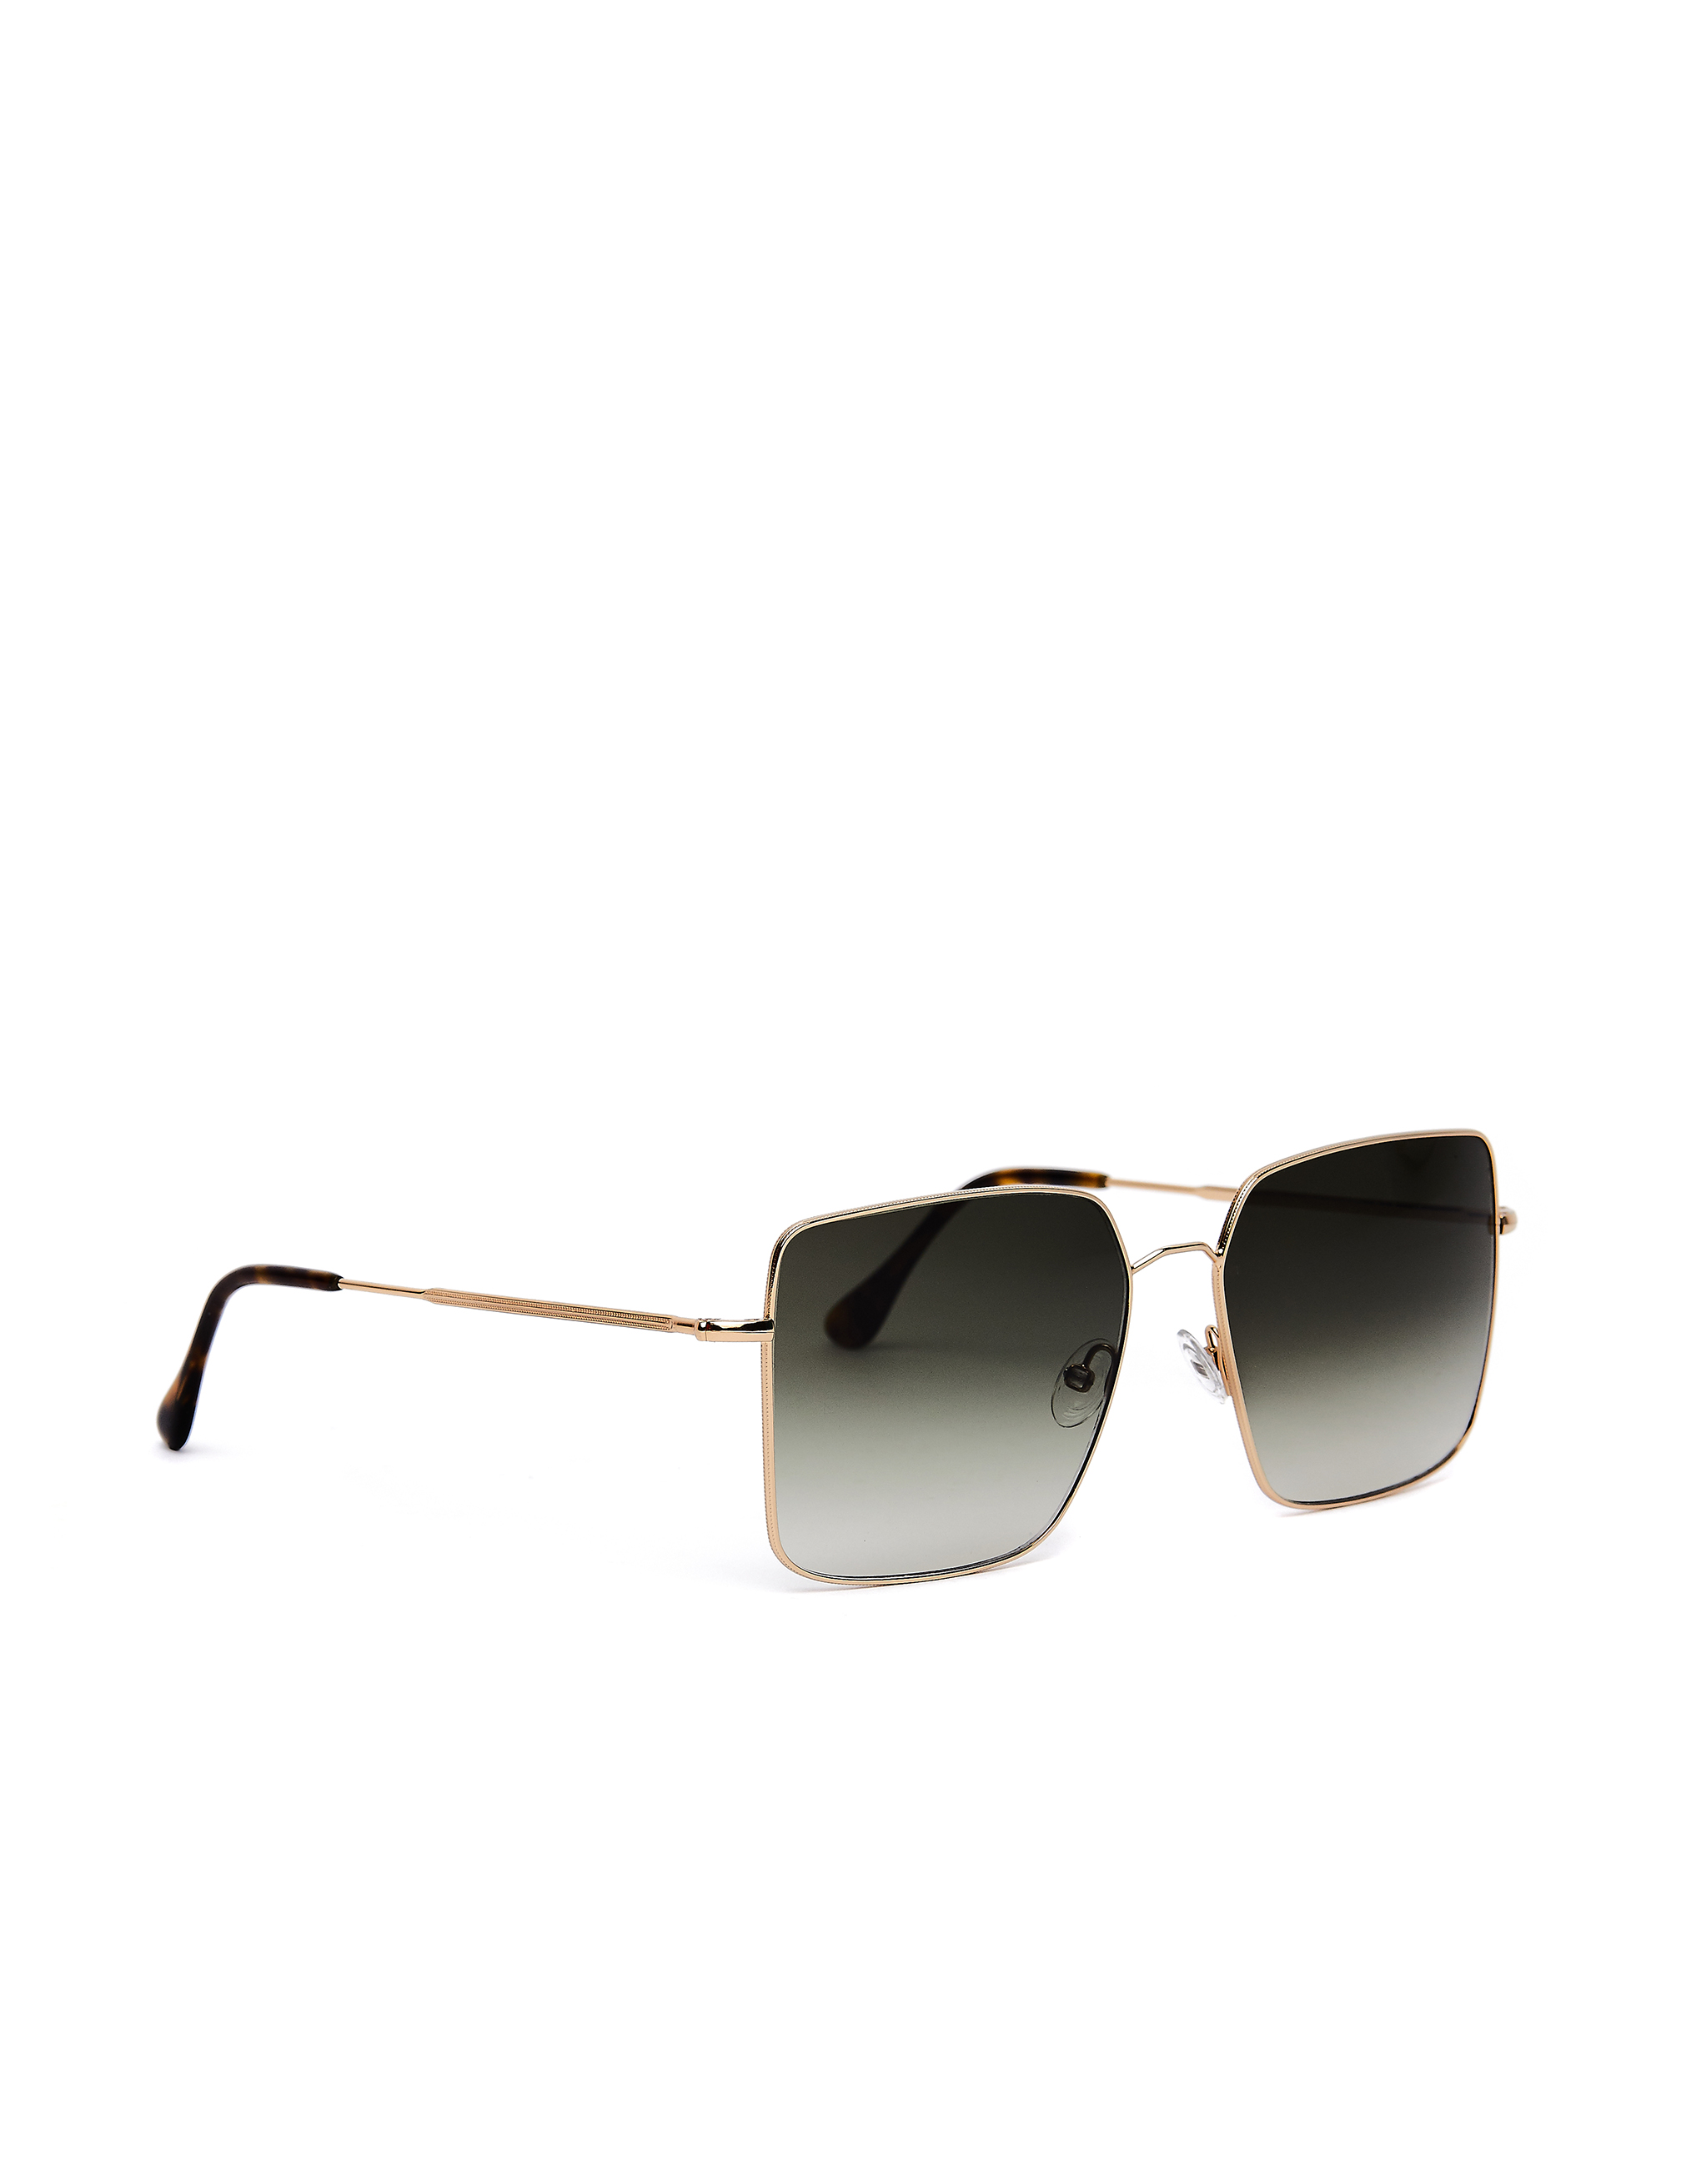 Andy Wolf Golden Anne Sunglasses